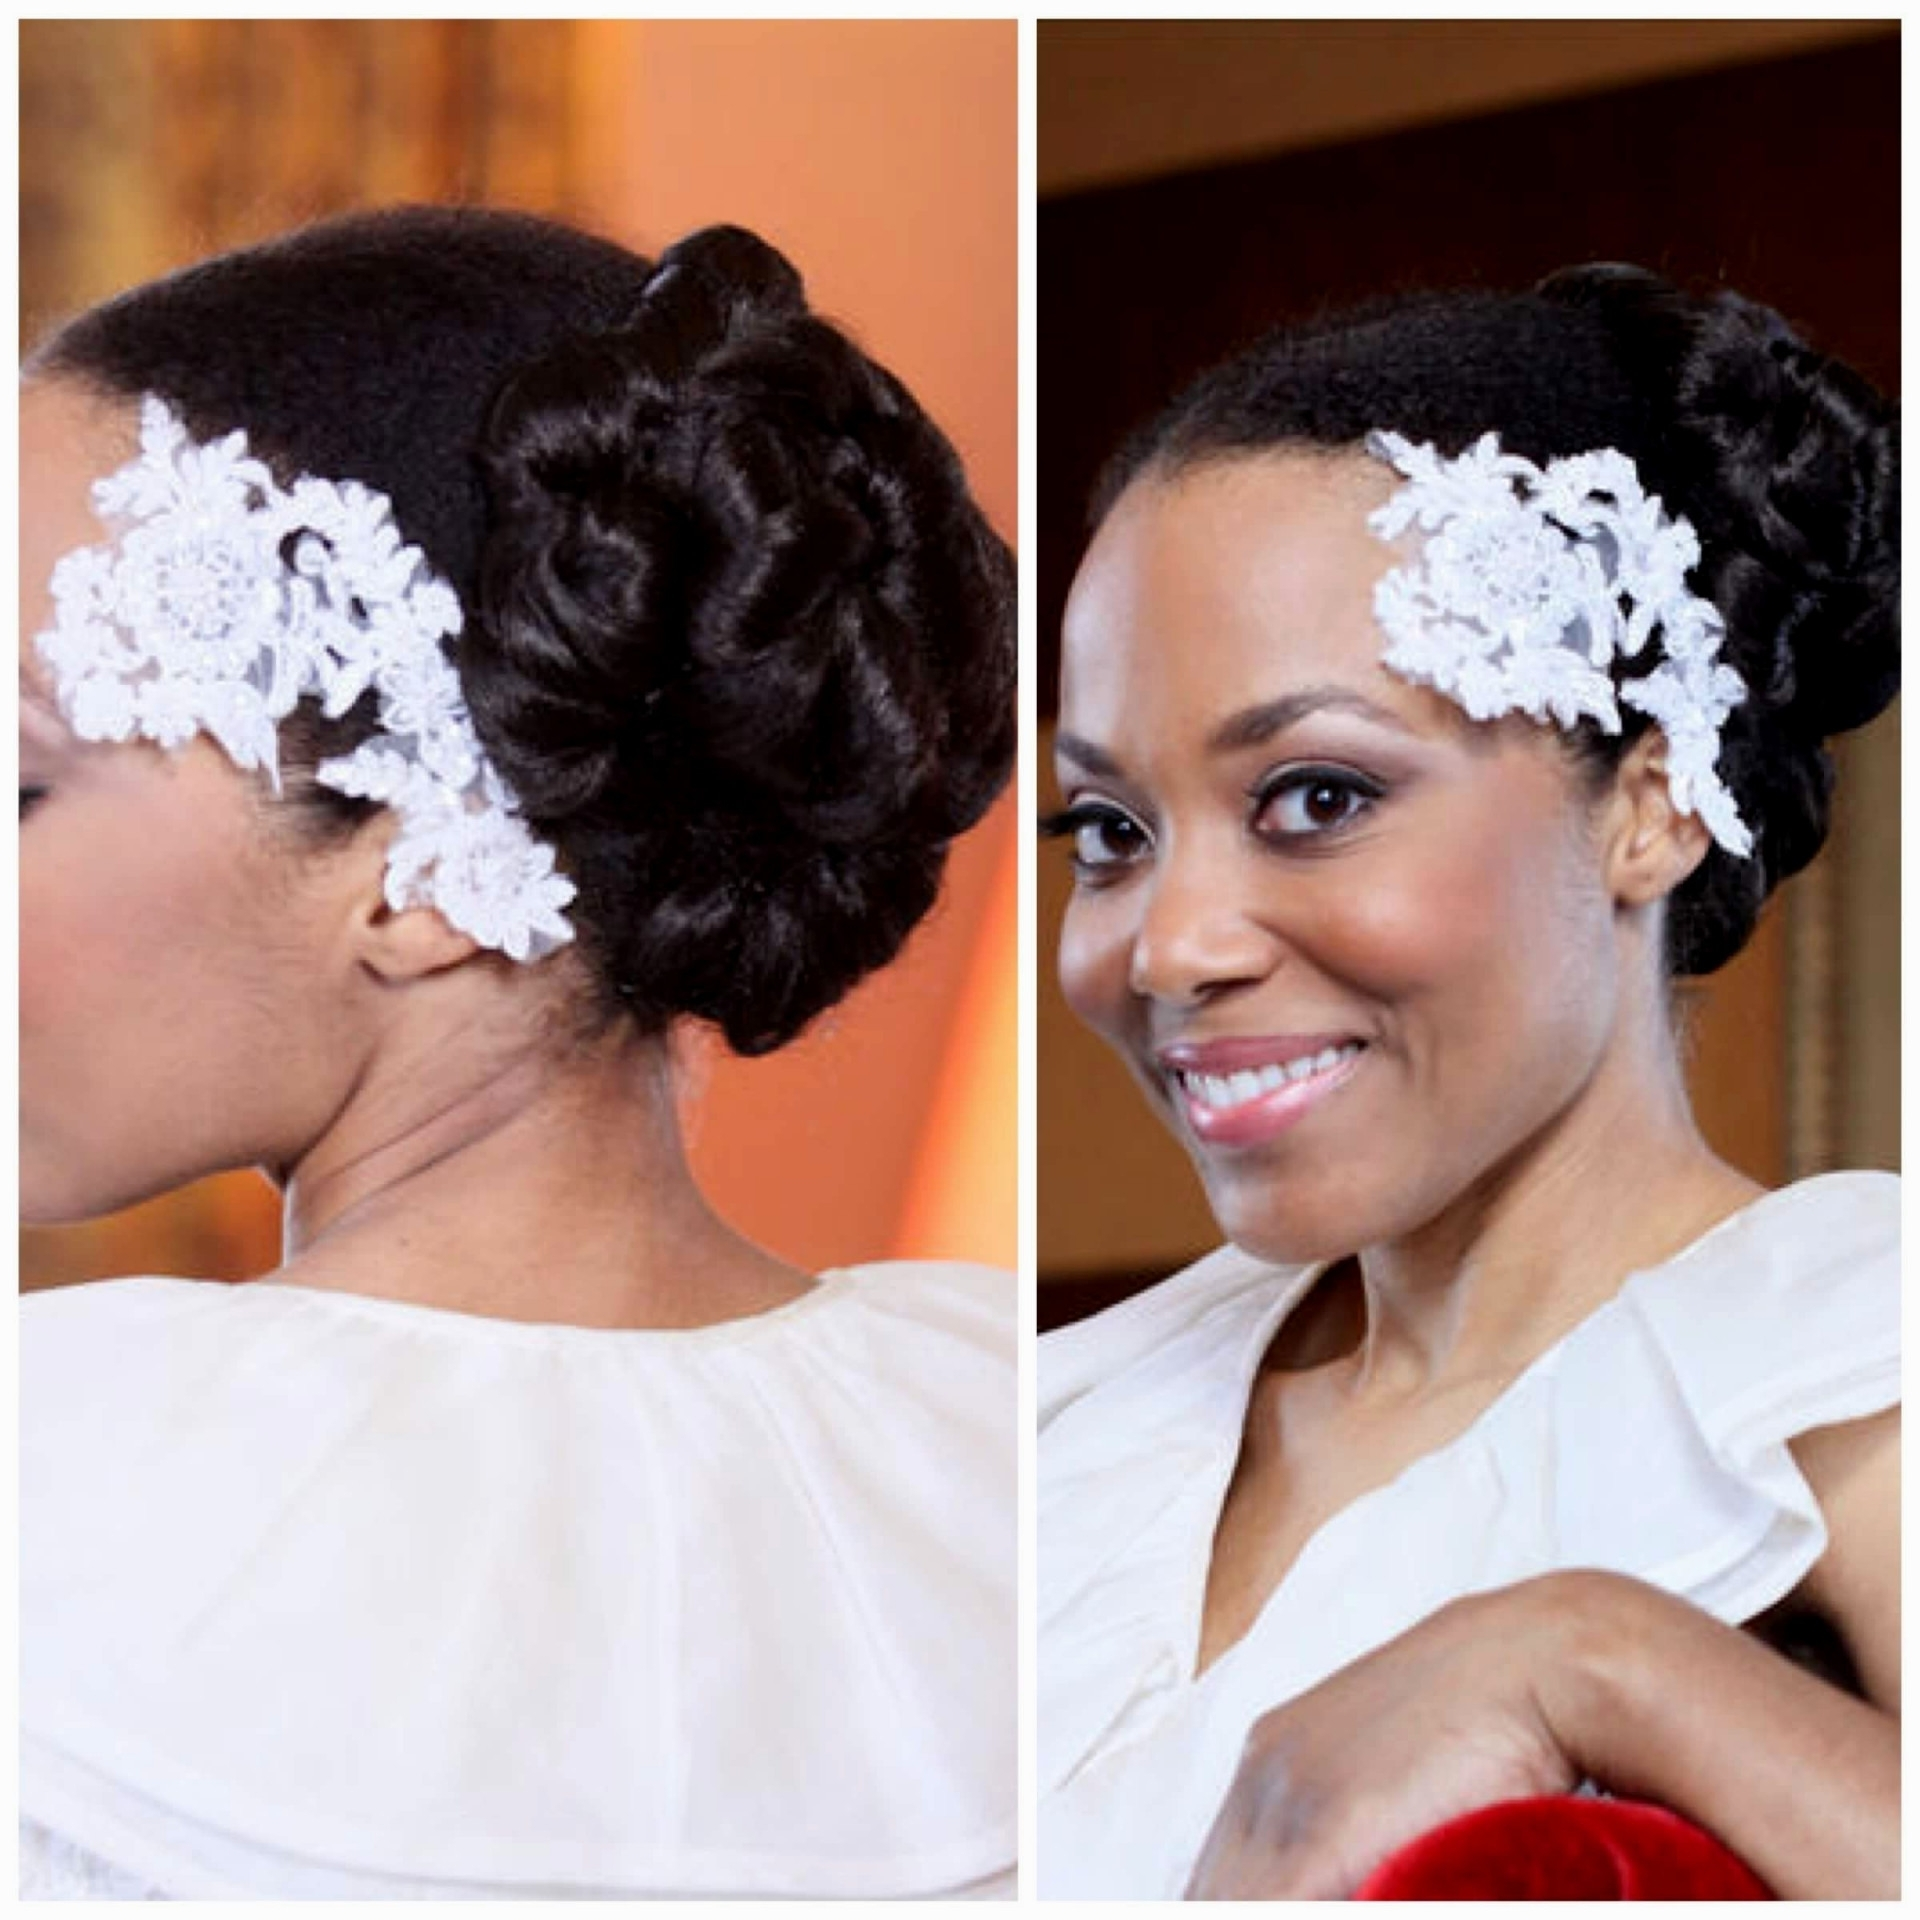 Wedding Hairstyles For African American Bridesmaids With Short Best Pertaining To Well Known Wedding Hairstyles For African American Bridesmaids (View 10 of 15)